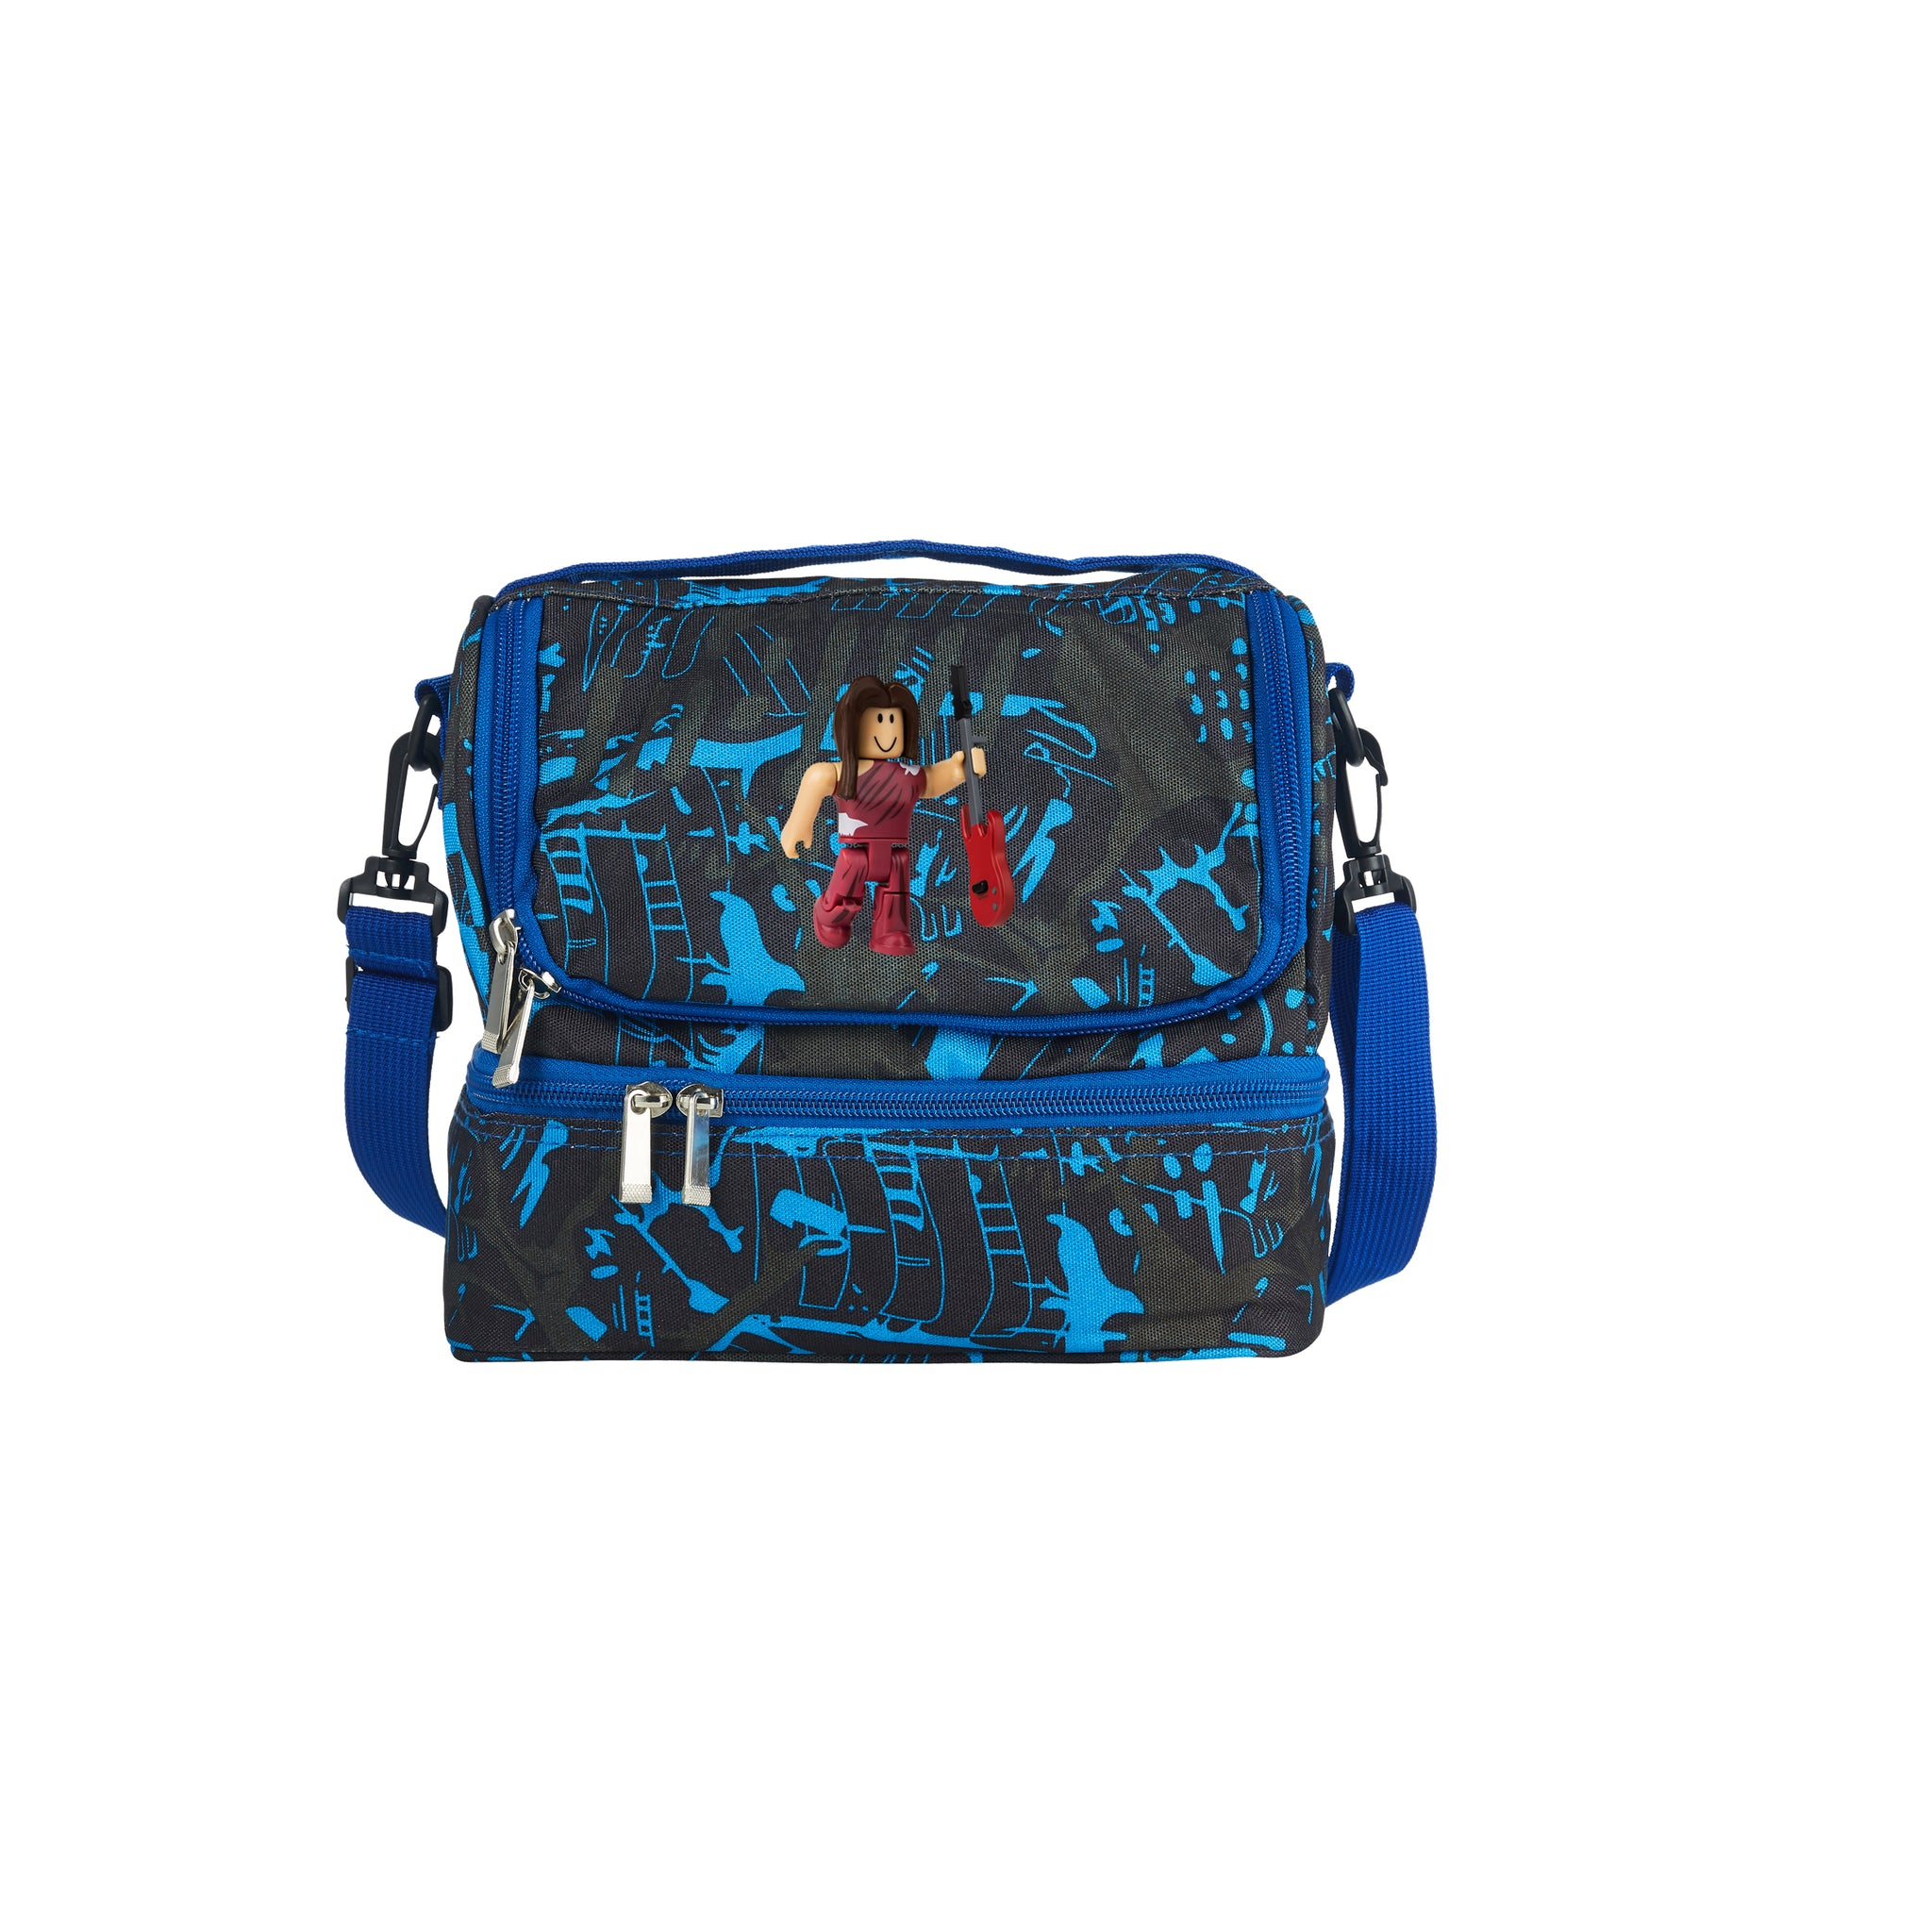 Roblox 2019 New RoCitizens Scarlet Minifigure Logo Kids Two Compartment Blue Graffiti Lunch Bag